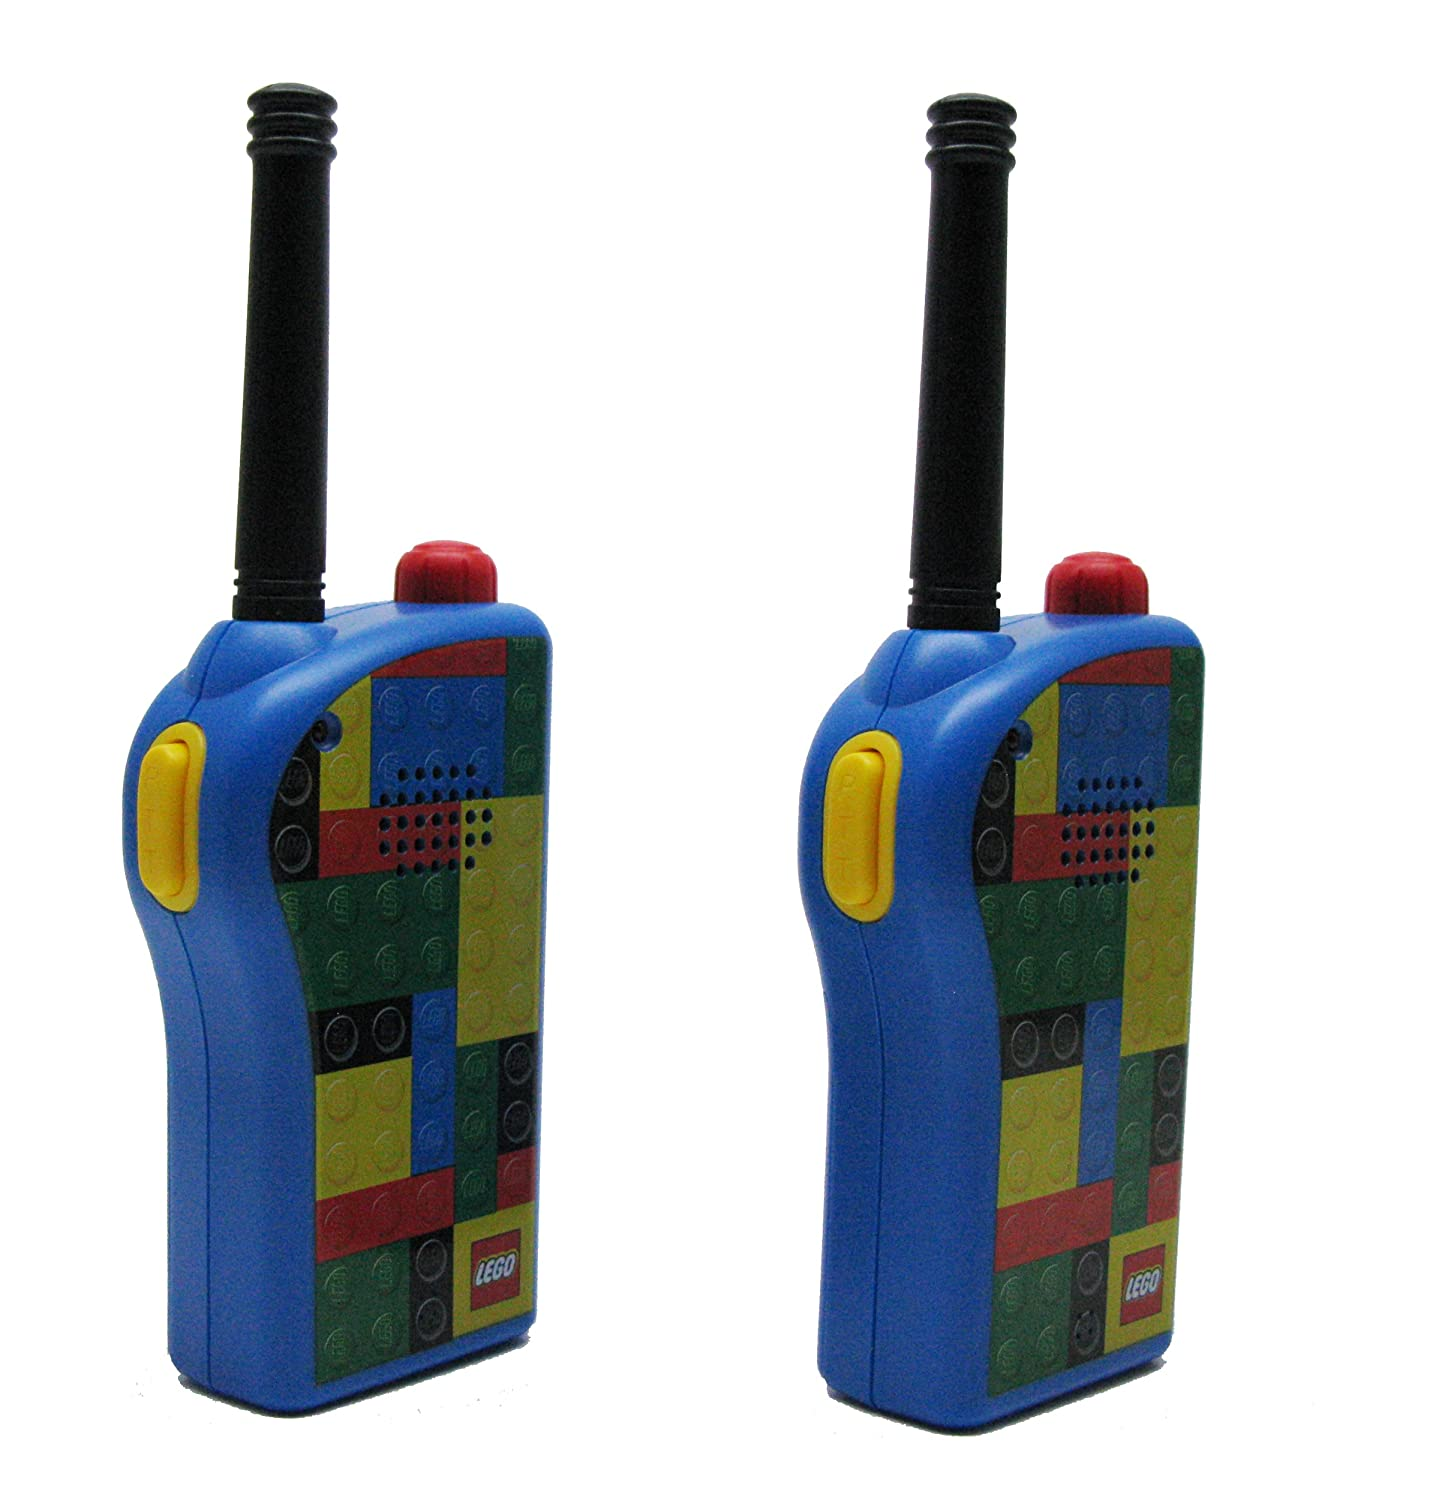 For Big Kids: LEGO Walkie Talkies